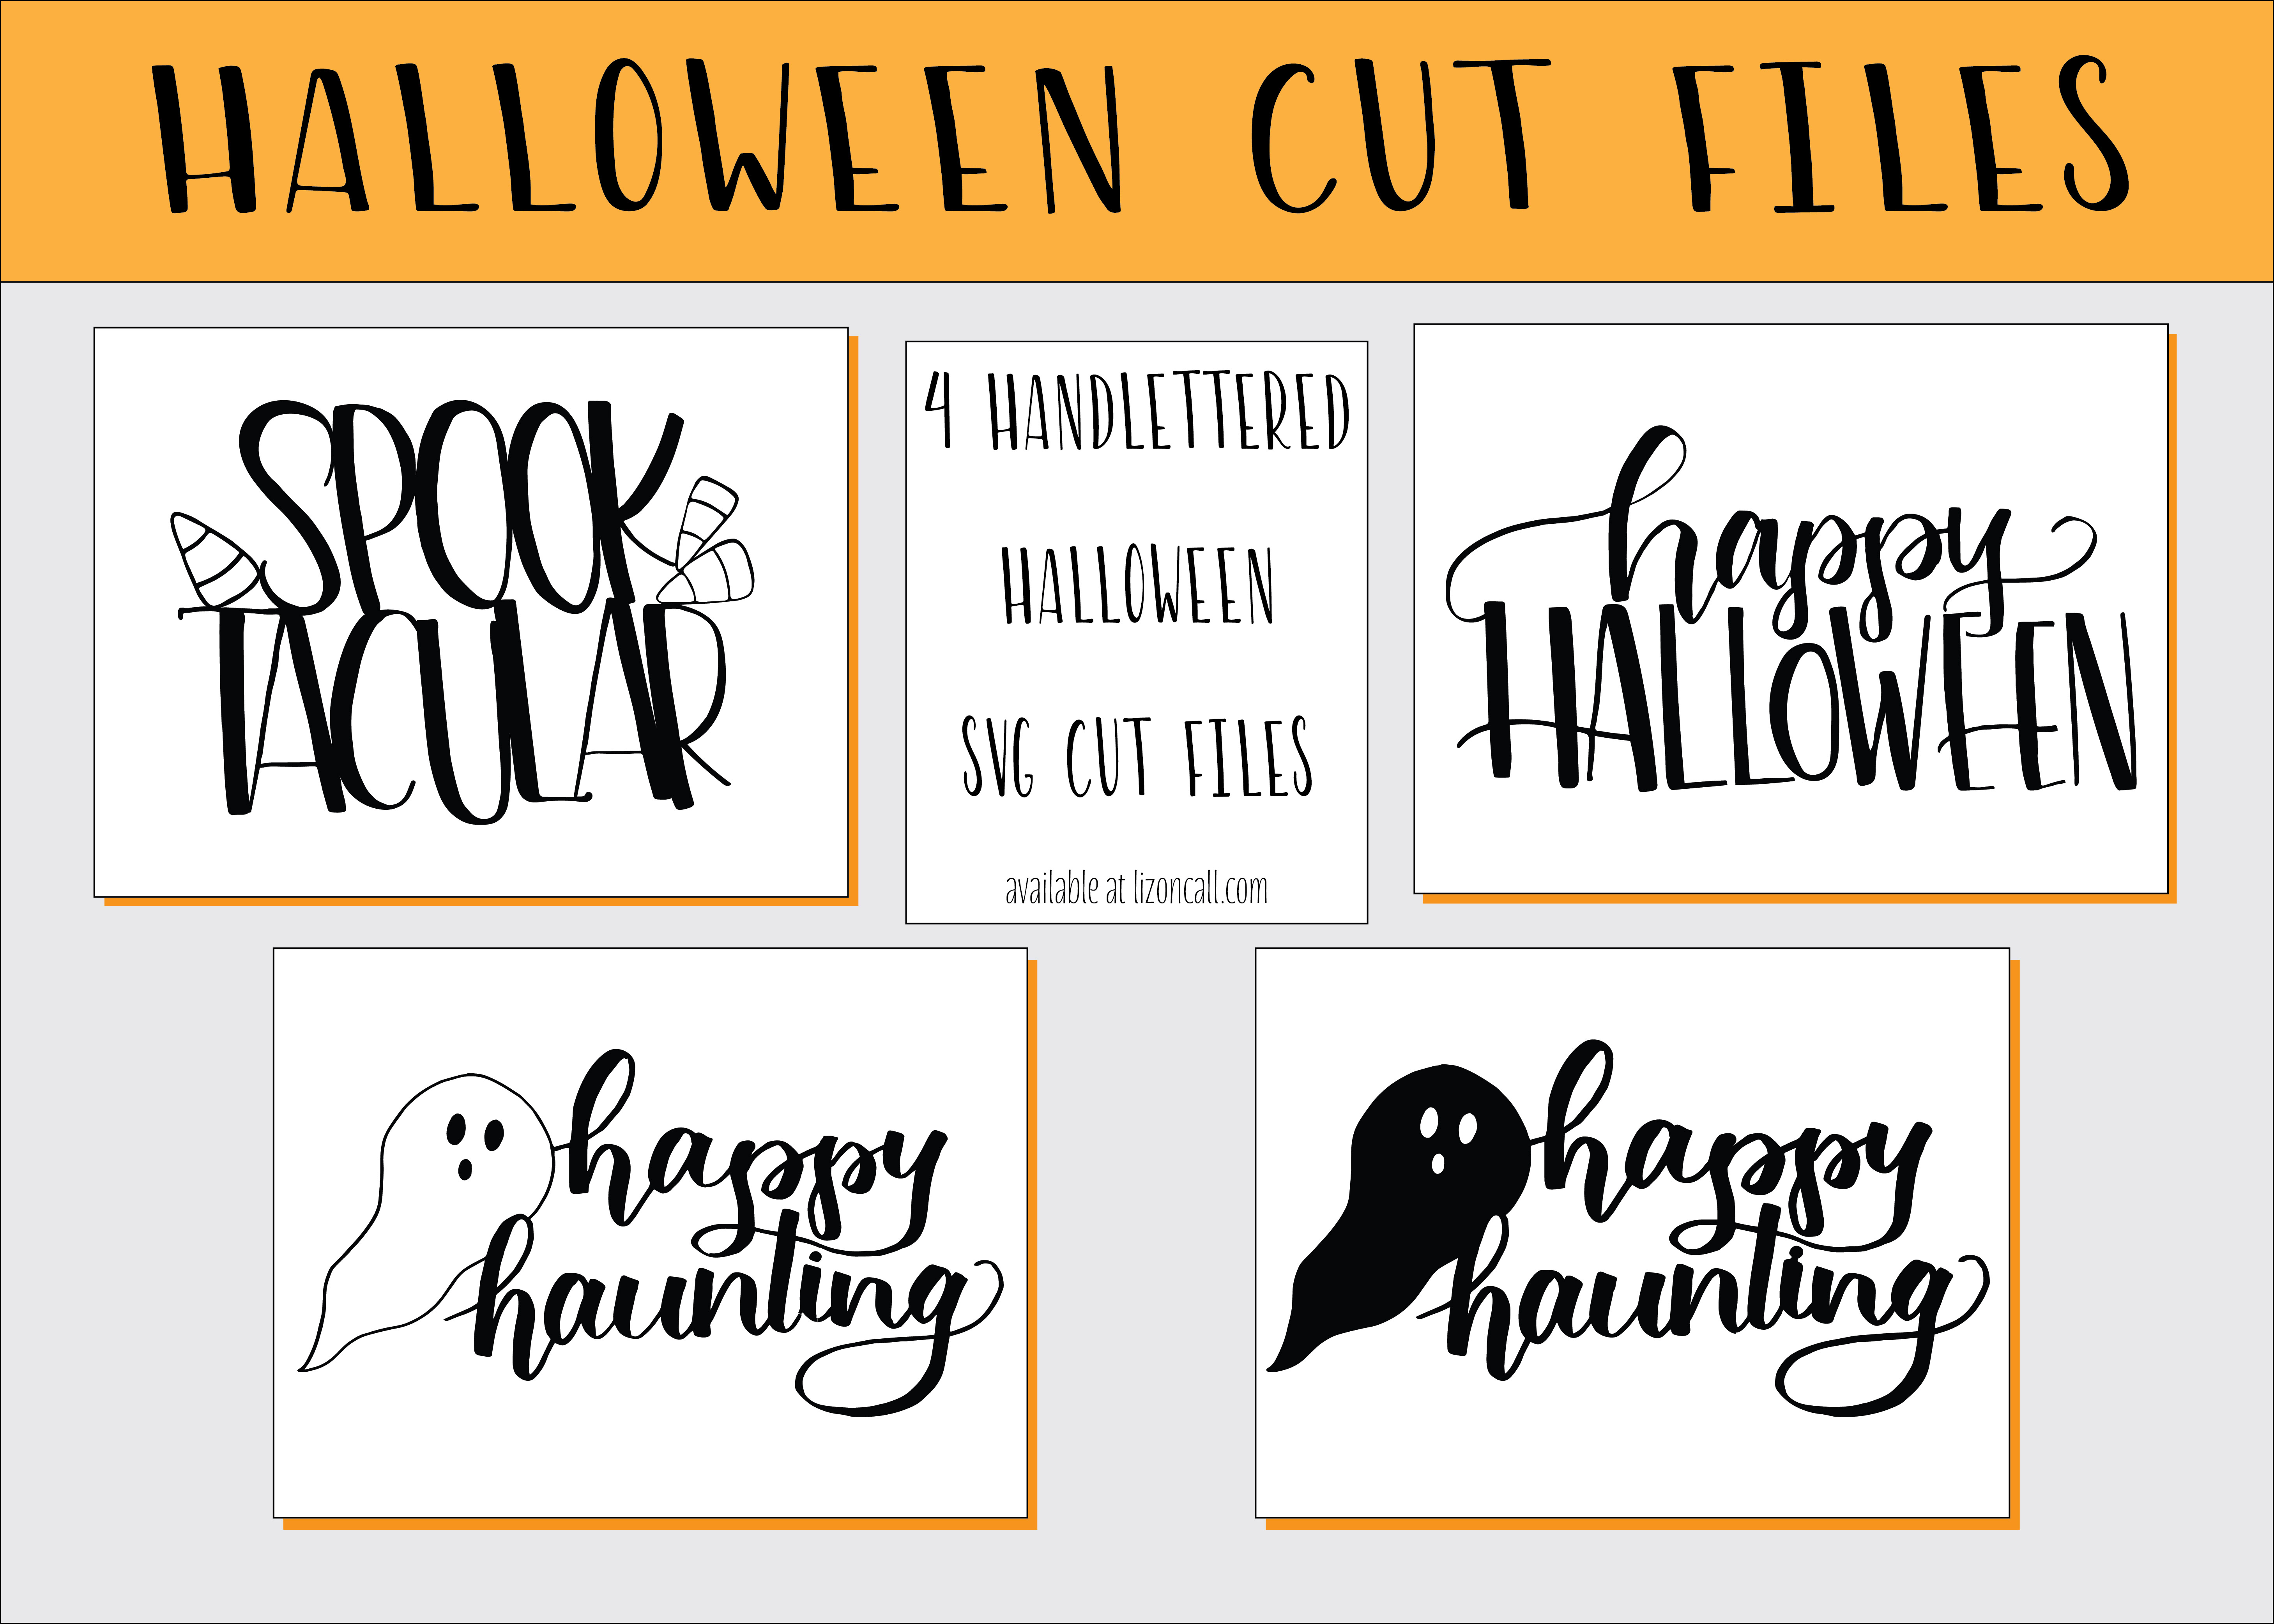 Handlettered halloween cut files for the halloween craft lover. Halloween SVG files available at lizoncall.com